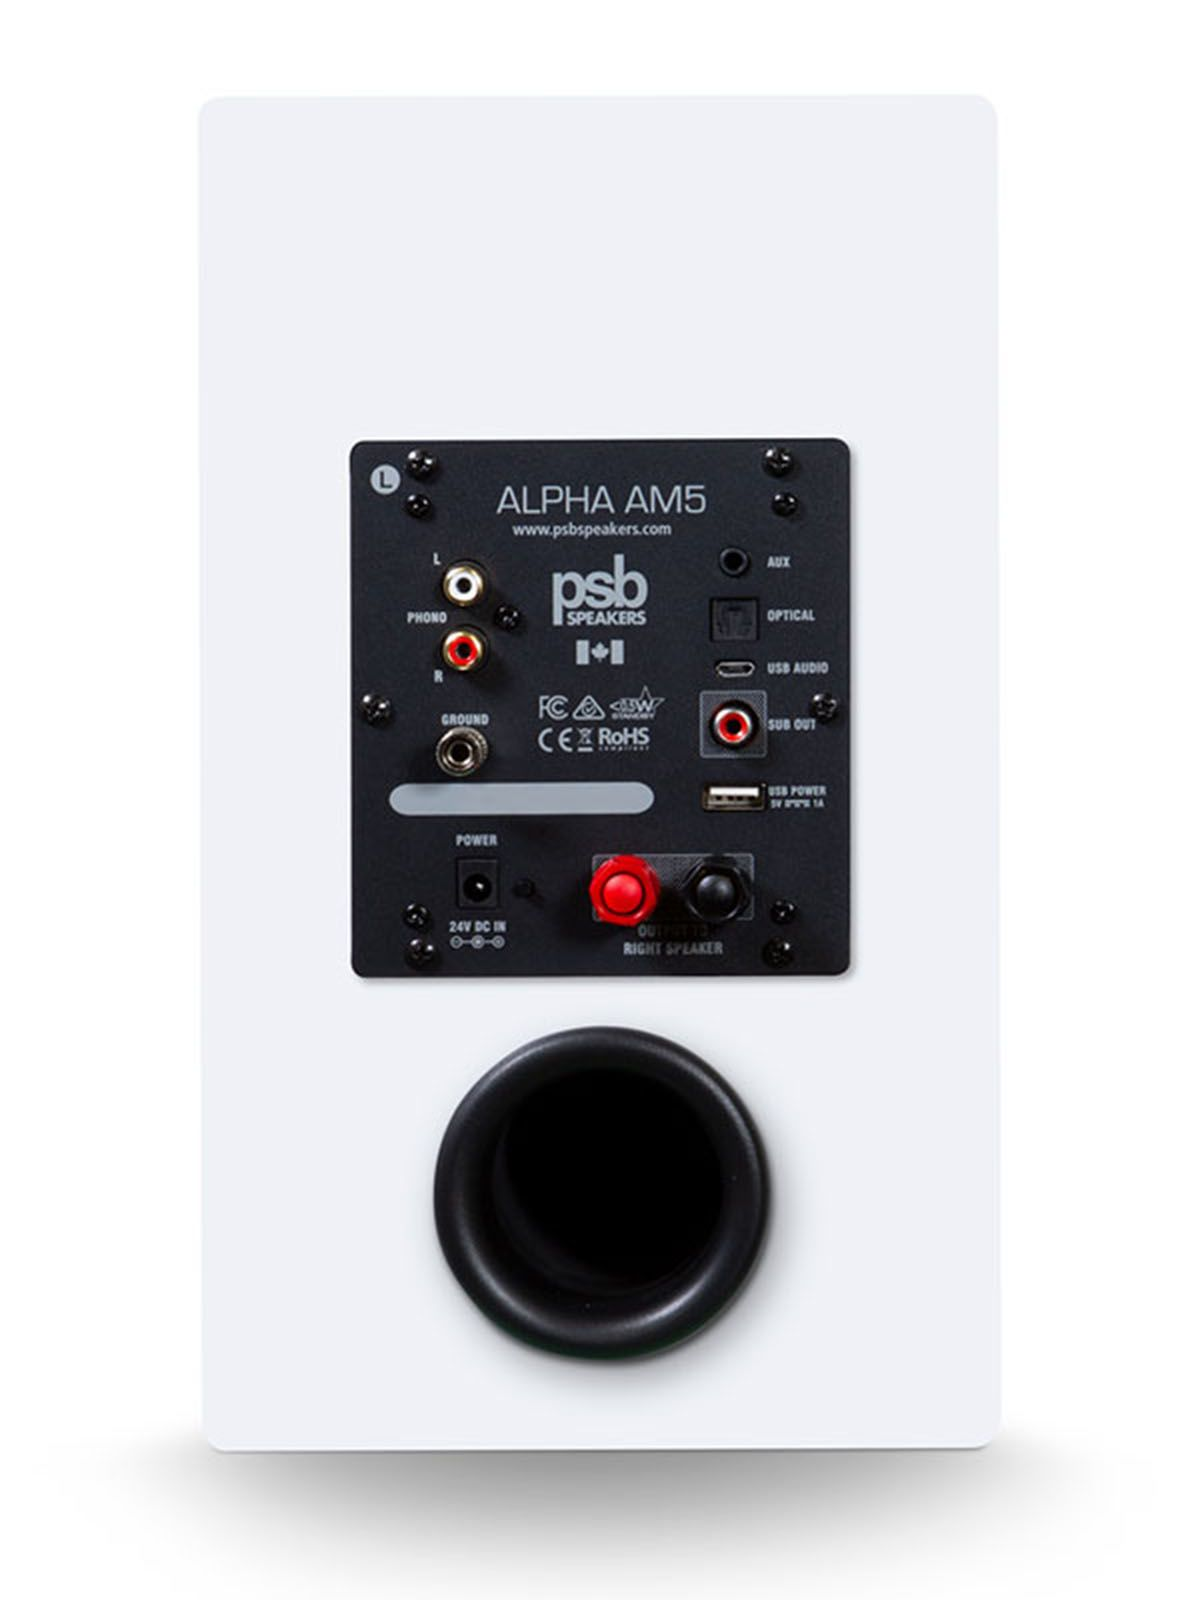 PSB Alpha AM5